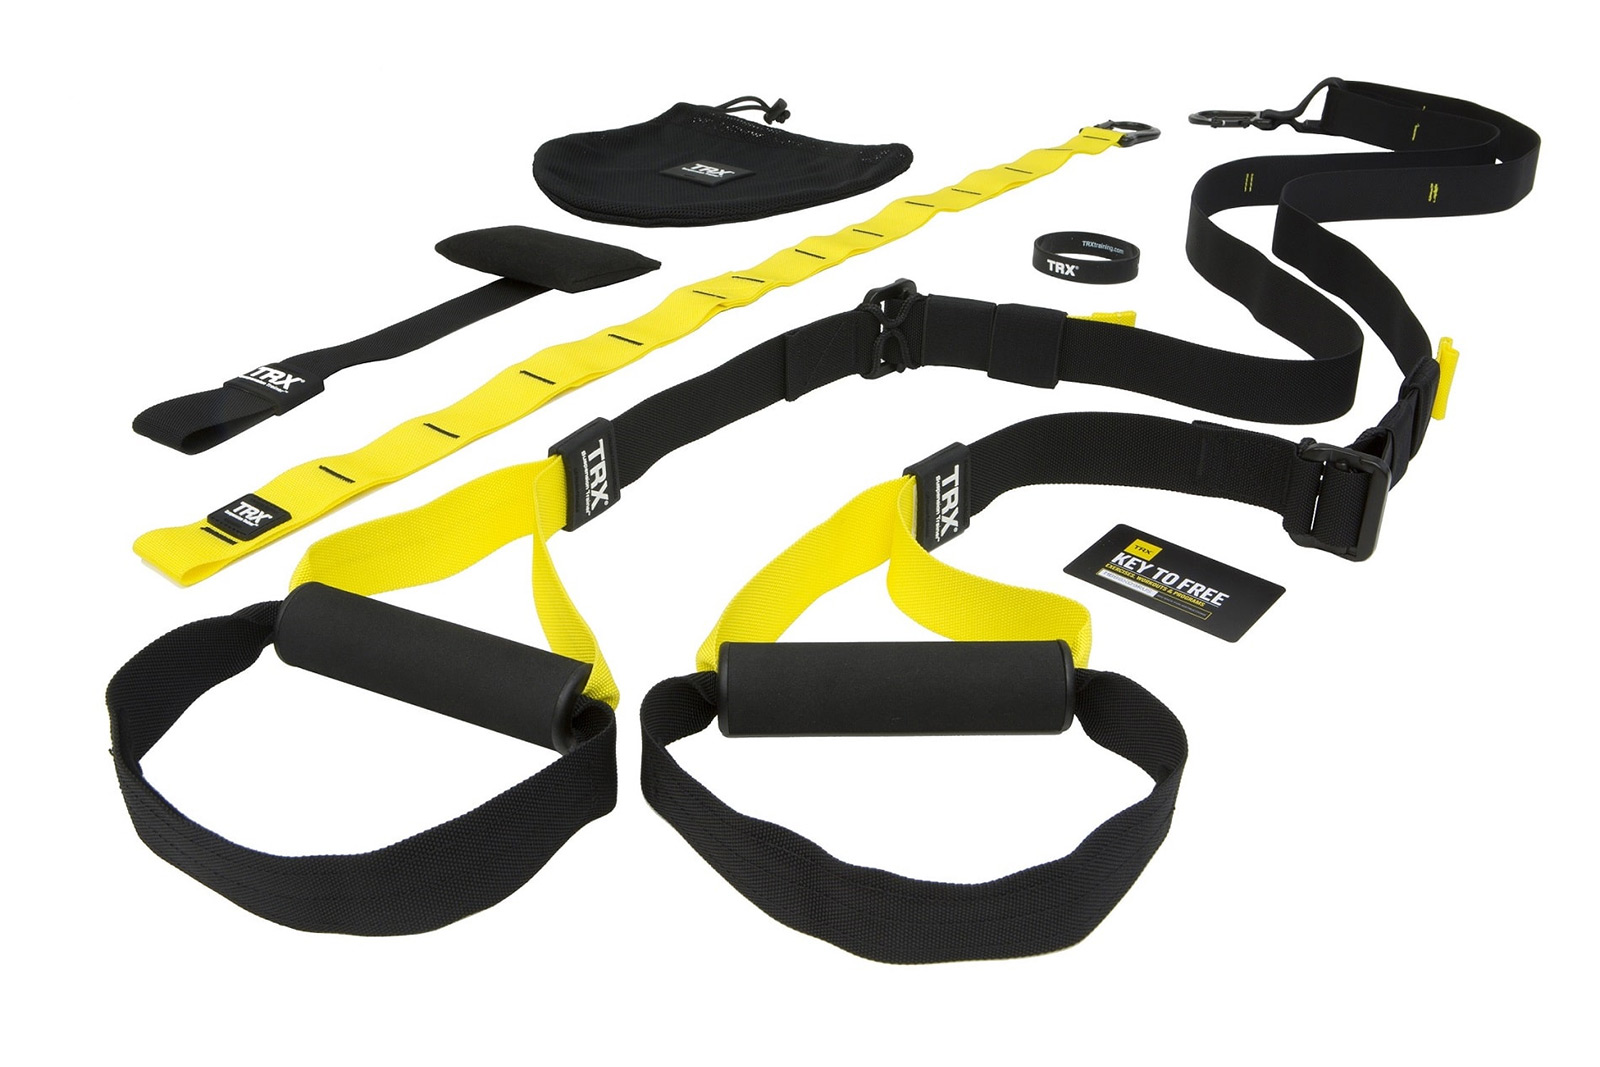 trx_home_gym_02